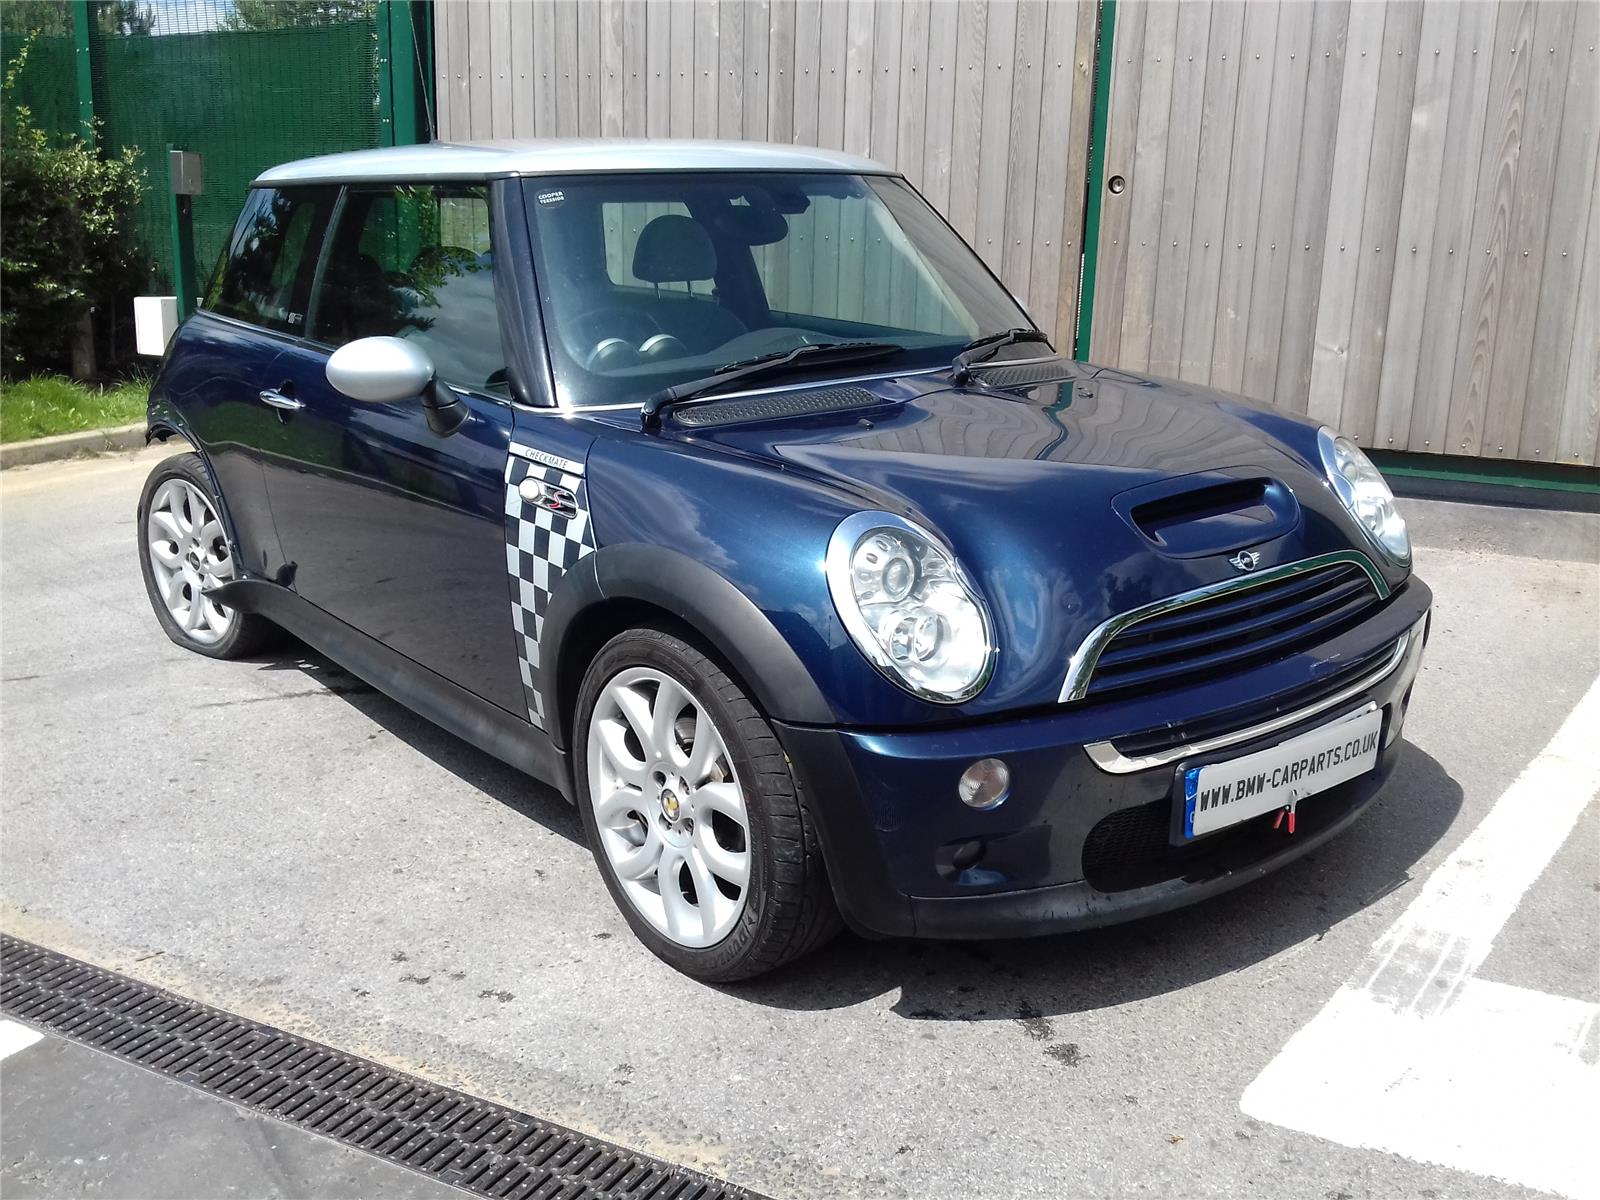 2005 mini r50 cooper s checkmate 3 door hatchback petrol manual breaking for used and spare. Black Bedroom Furniture Sets. Home Design Ideas